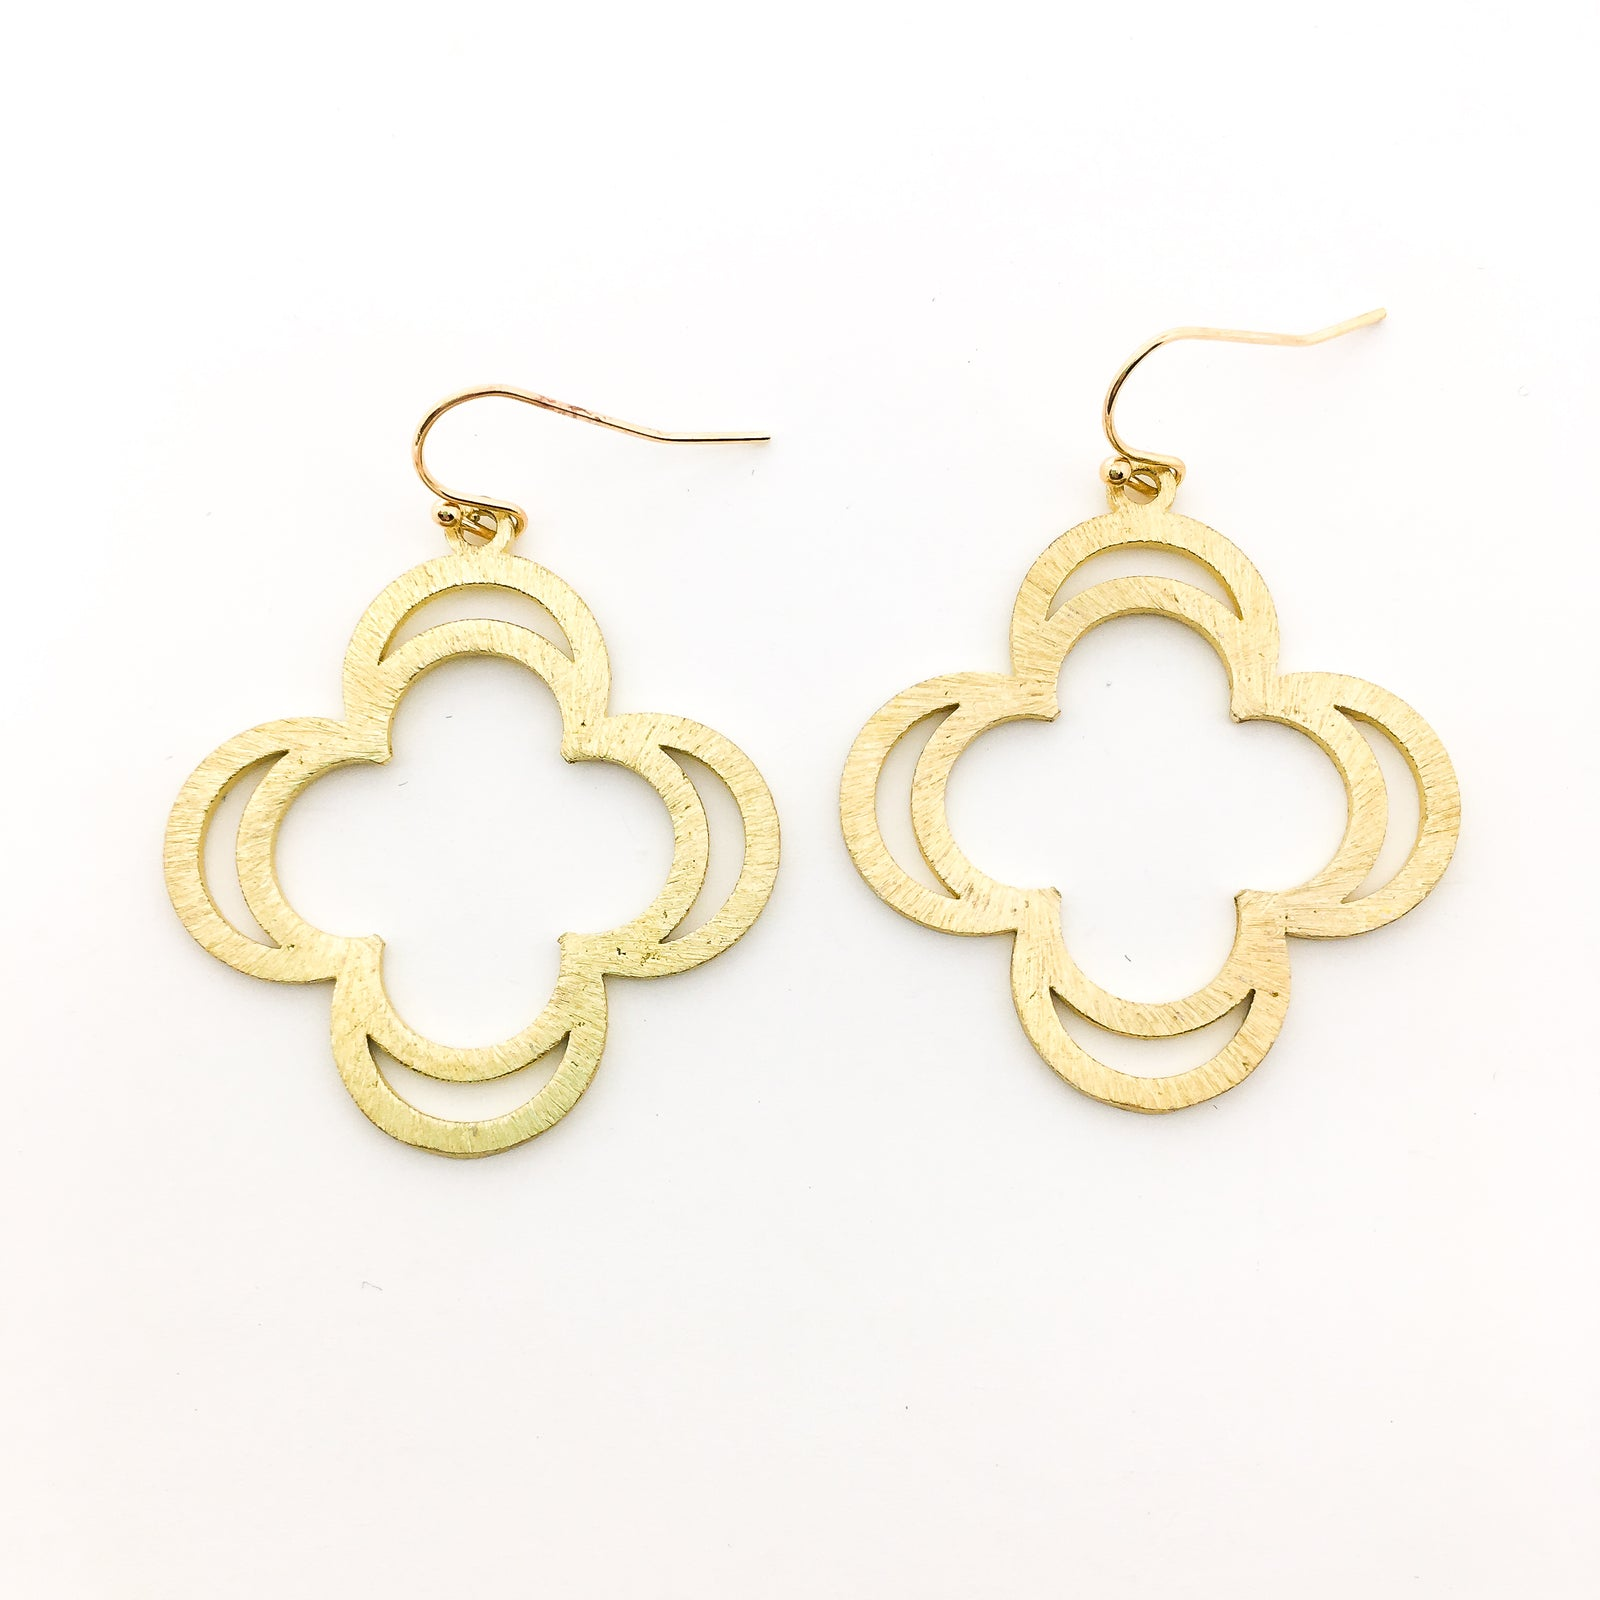 BRUSHED DOUBLE PETAL EARRINGS | 14K GOLD-FILLED